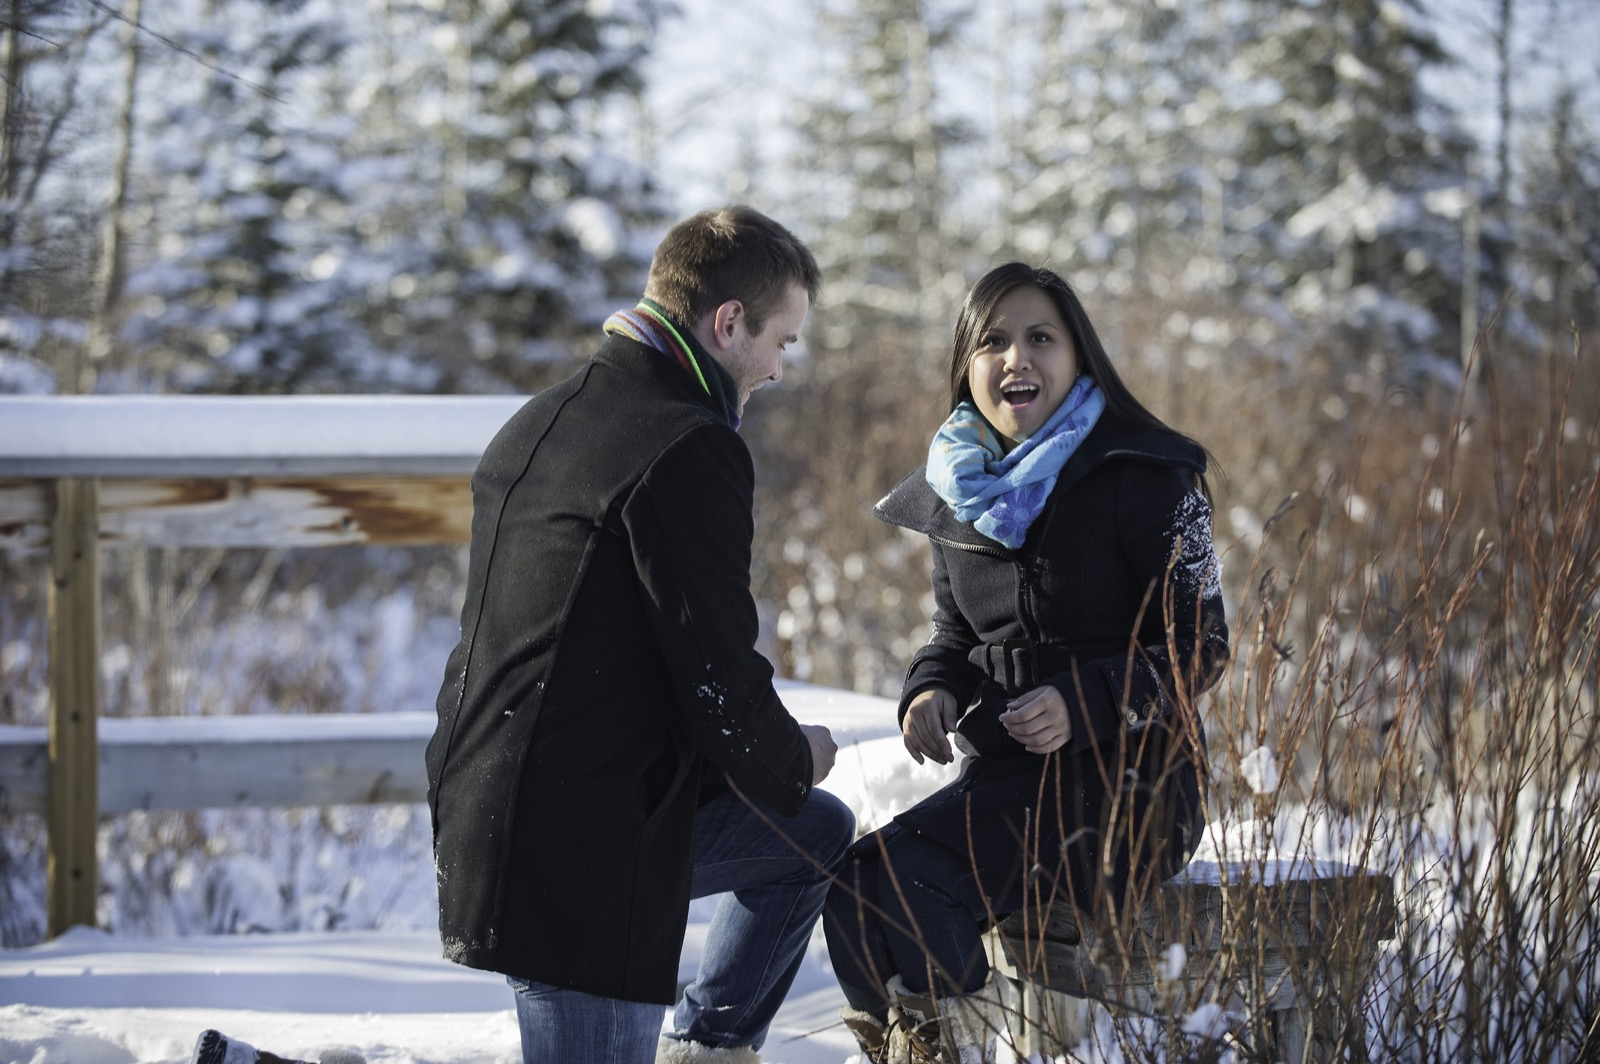 victoria-wedding-photographers-calgary-winter-engagement-proposal-13.jpg